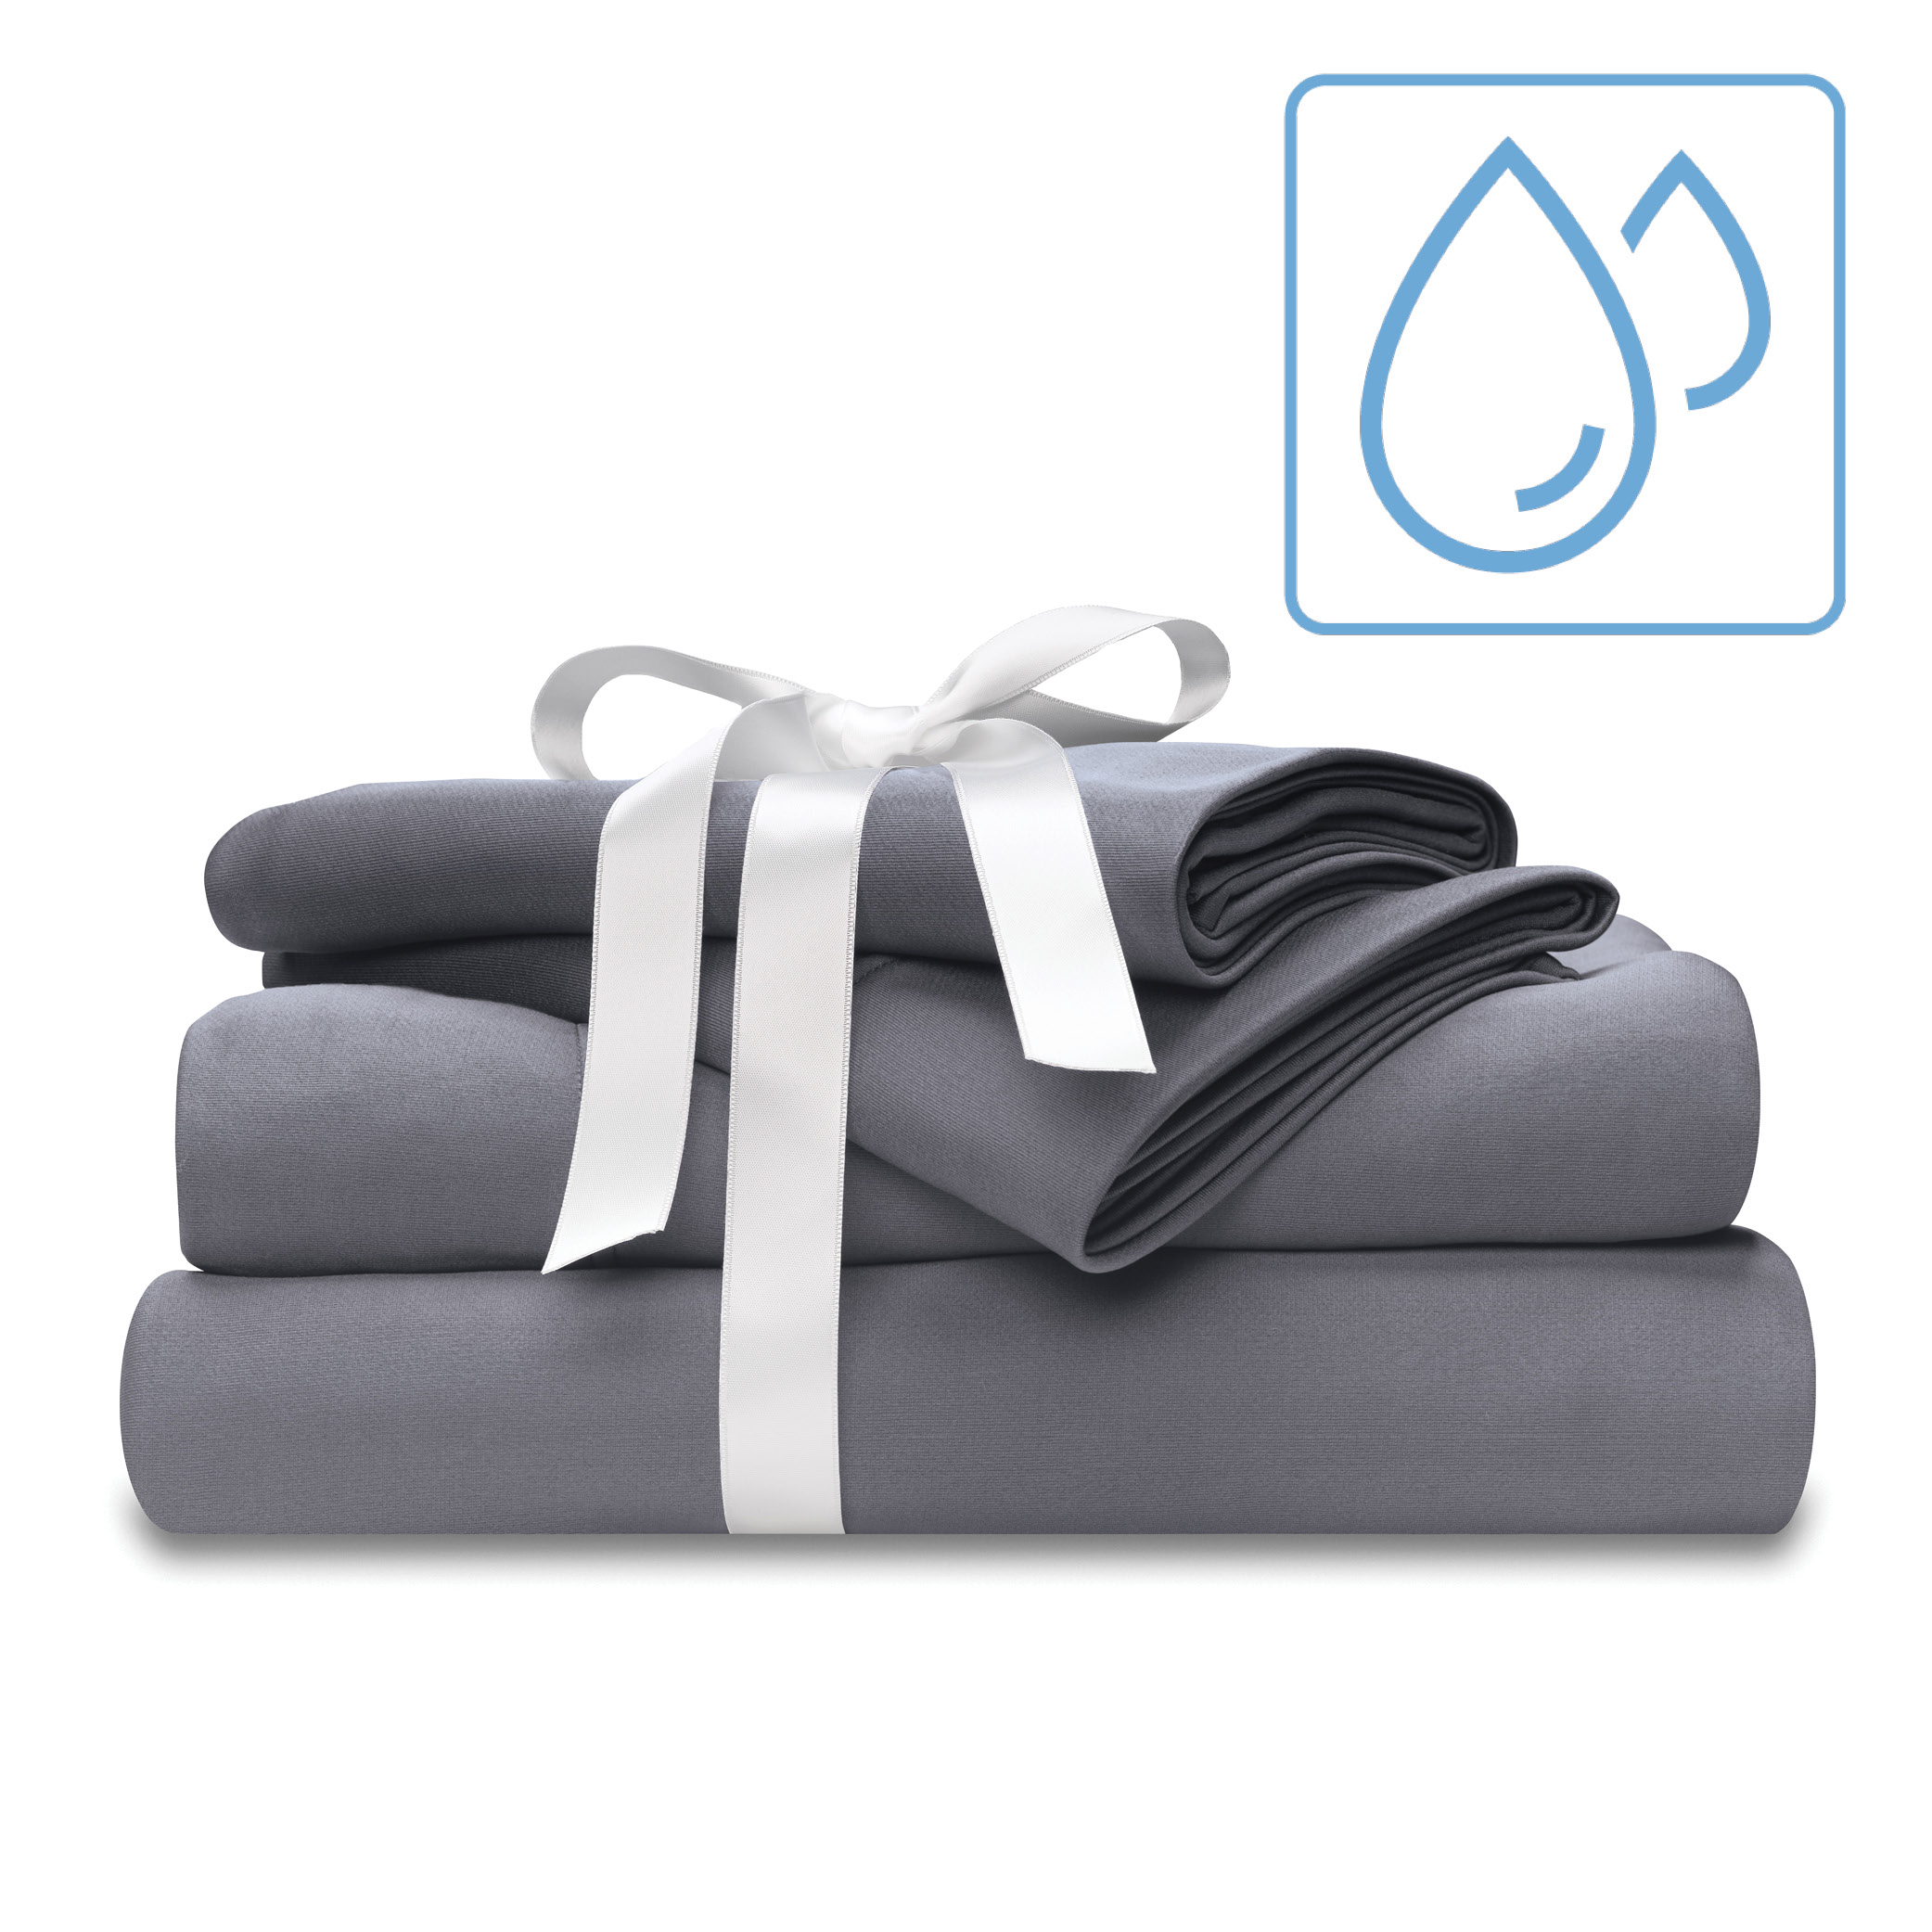 Original Moisture Wicking Bed Sheet Set Wicked Sheets